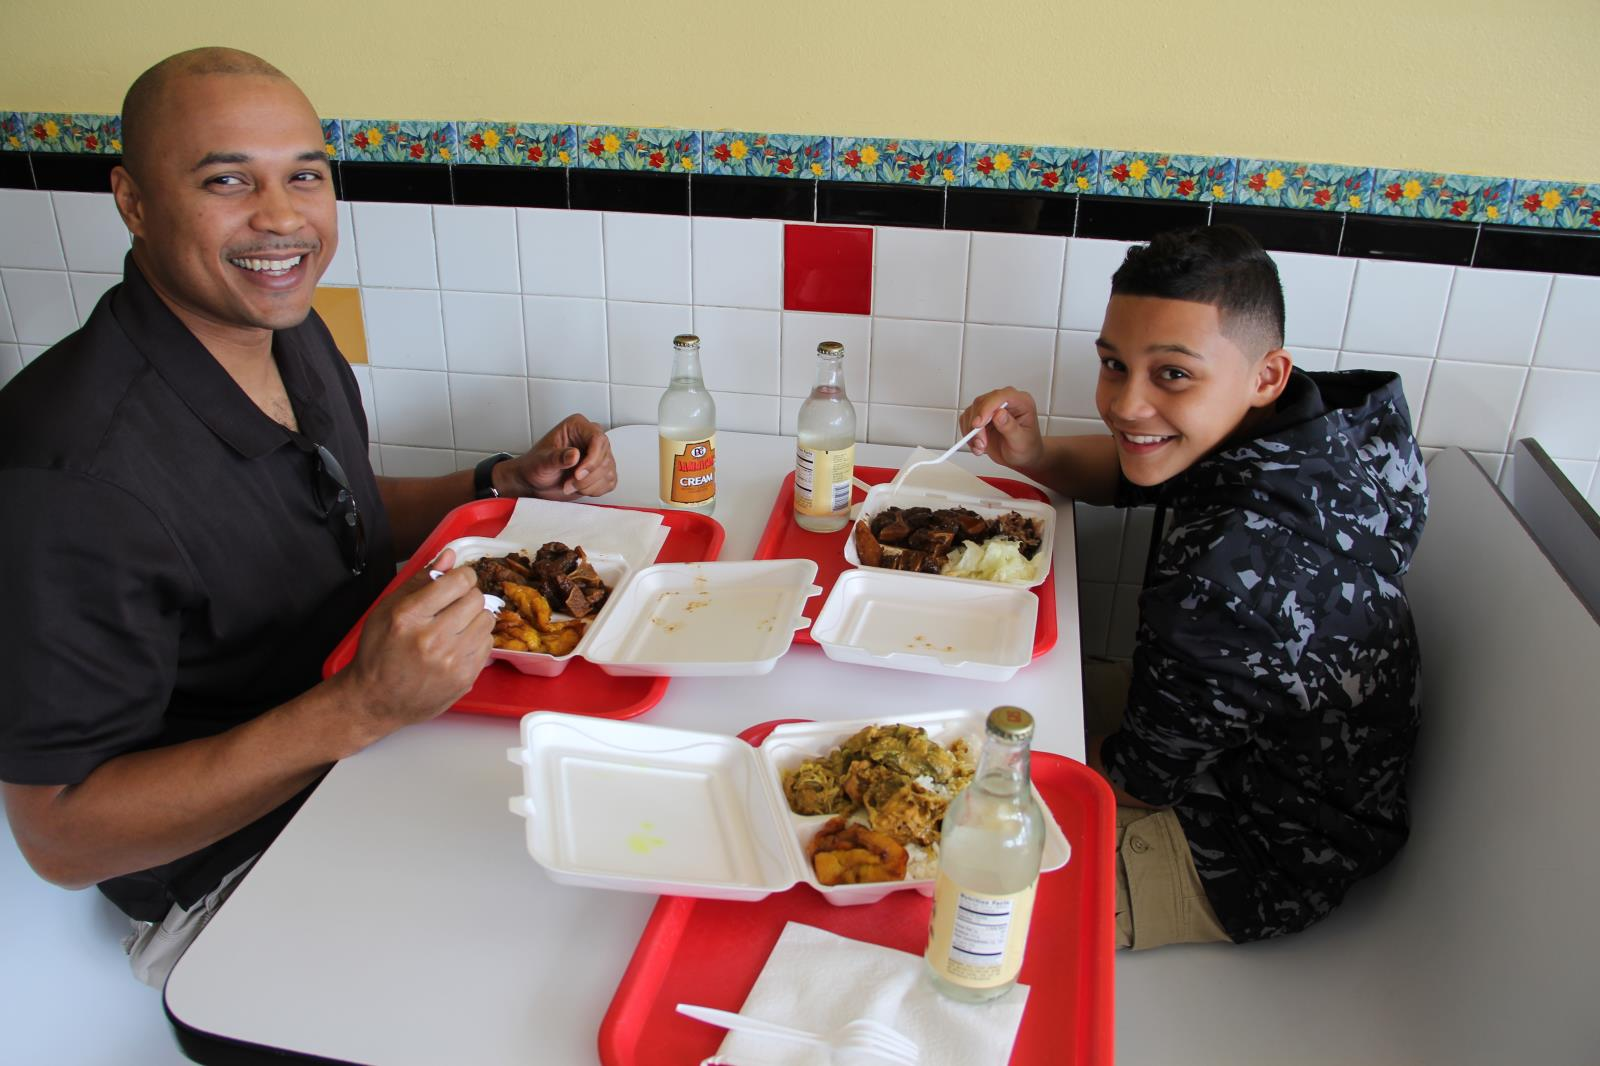 Sean Henderson and son enjoying food